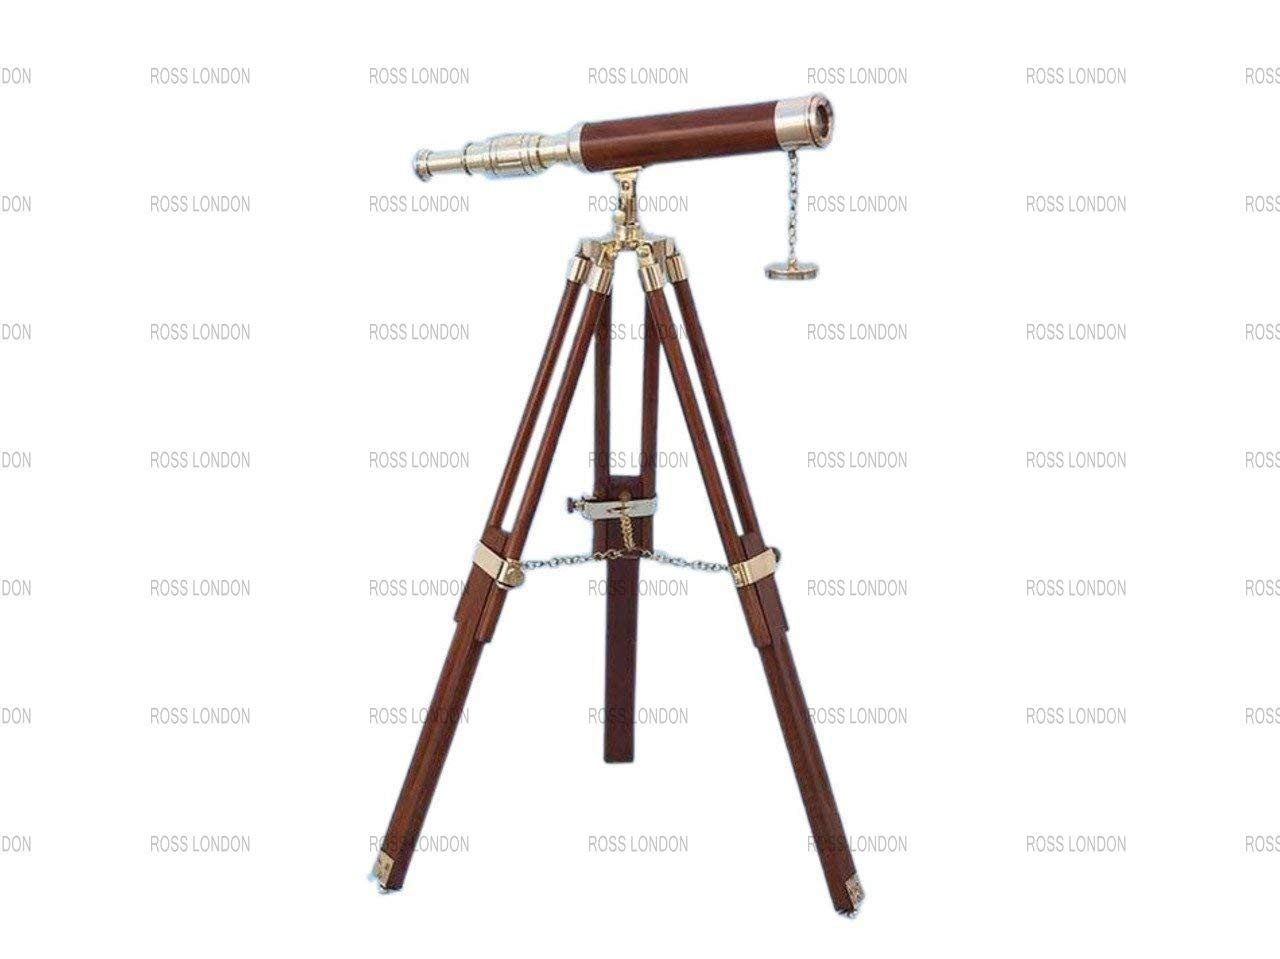 ROSS LONDON Antique Marine Brass Telescope Spyglass 14'' Solid Brass with Wooden Tripod Stand